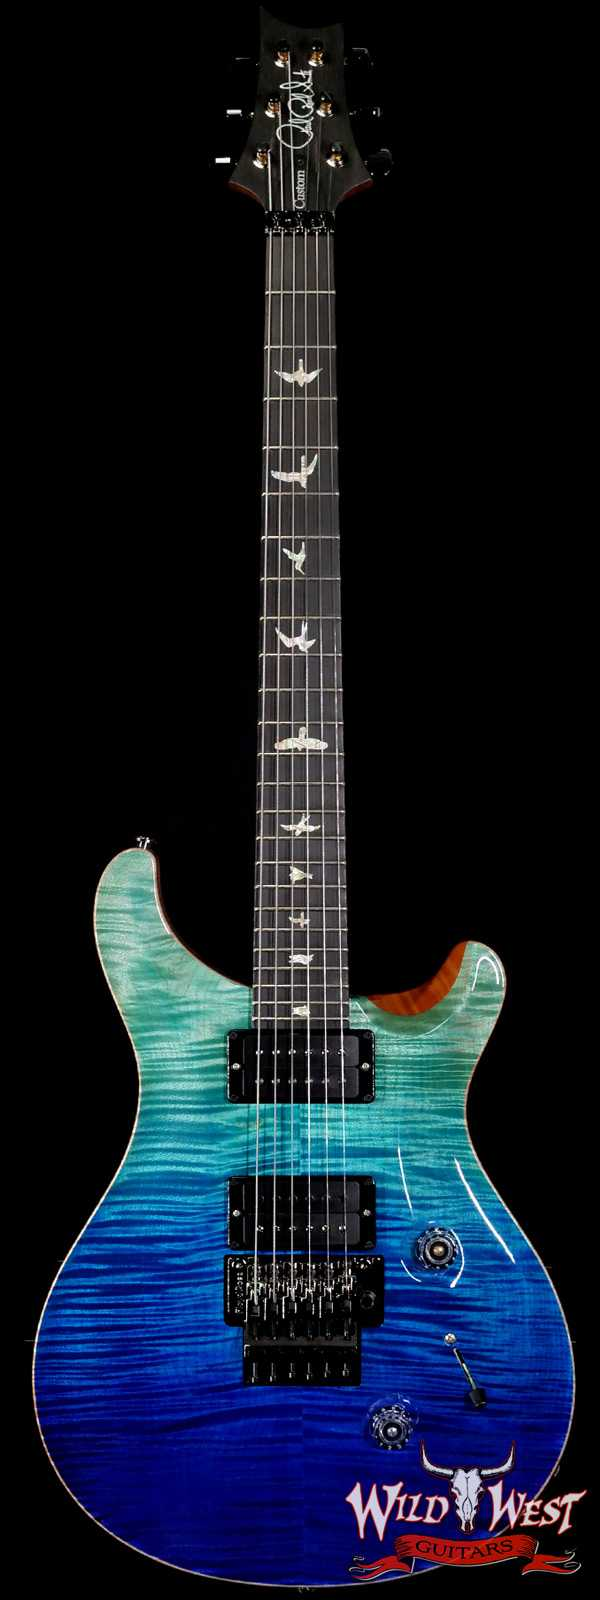 Paul Reed Smith PRS Wood Library 10 Top Custom 24 Floyd Rose Roasted Flame Maple Neck Blue Fade